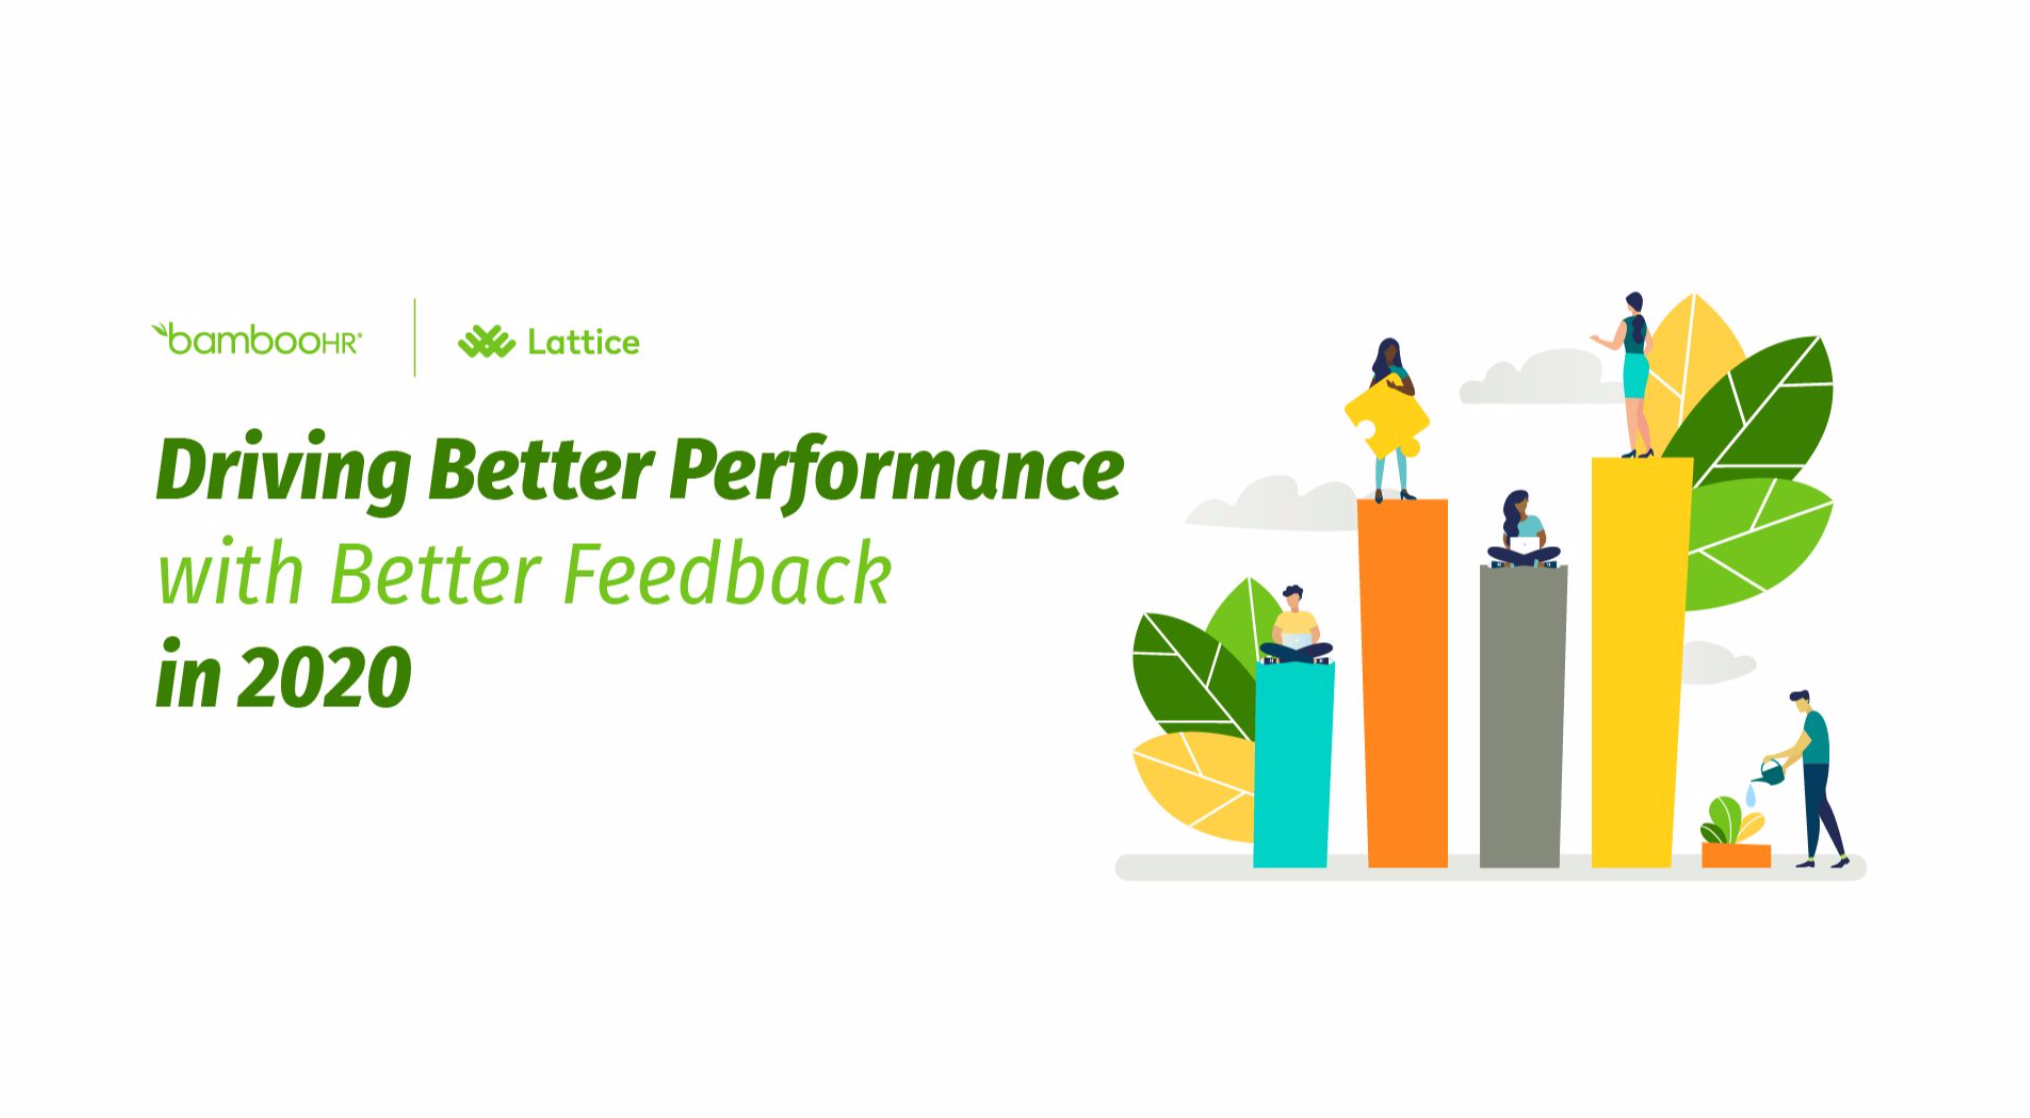 Driving Better Performance with Better Feedback in 2020